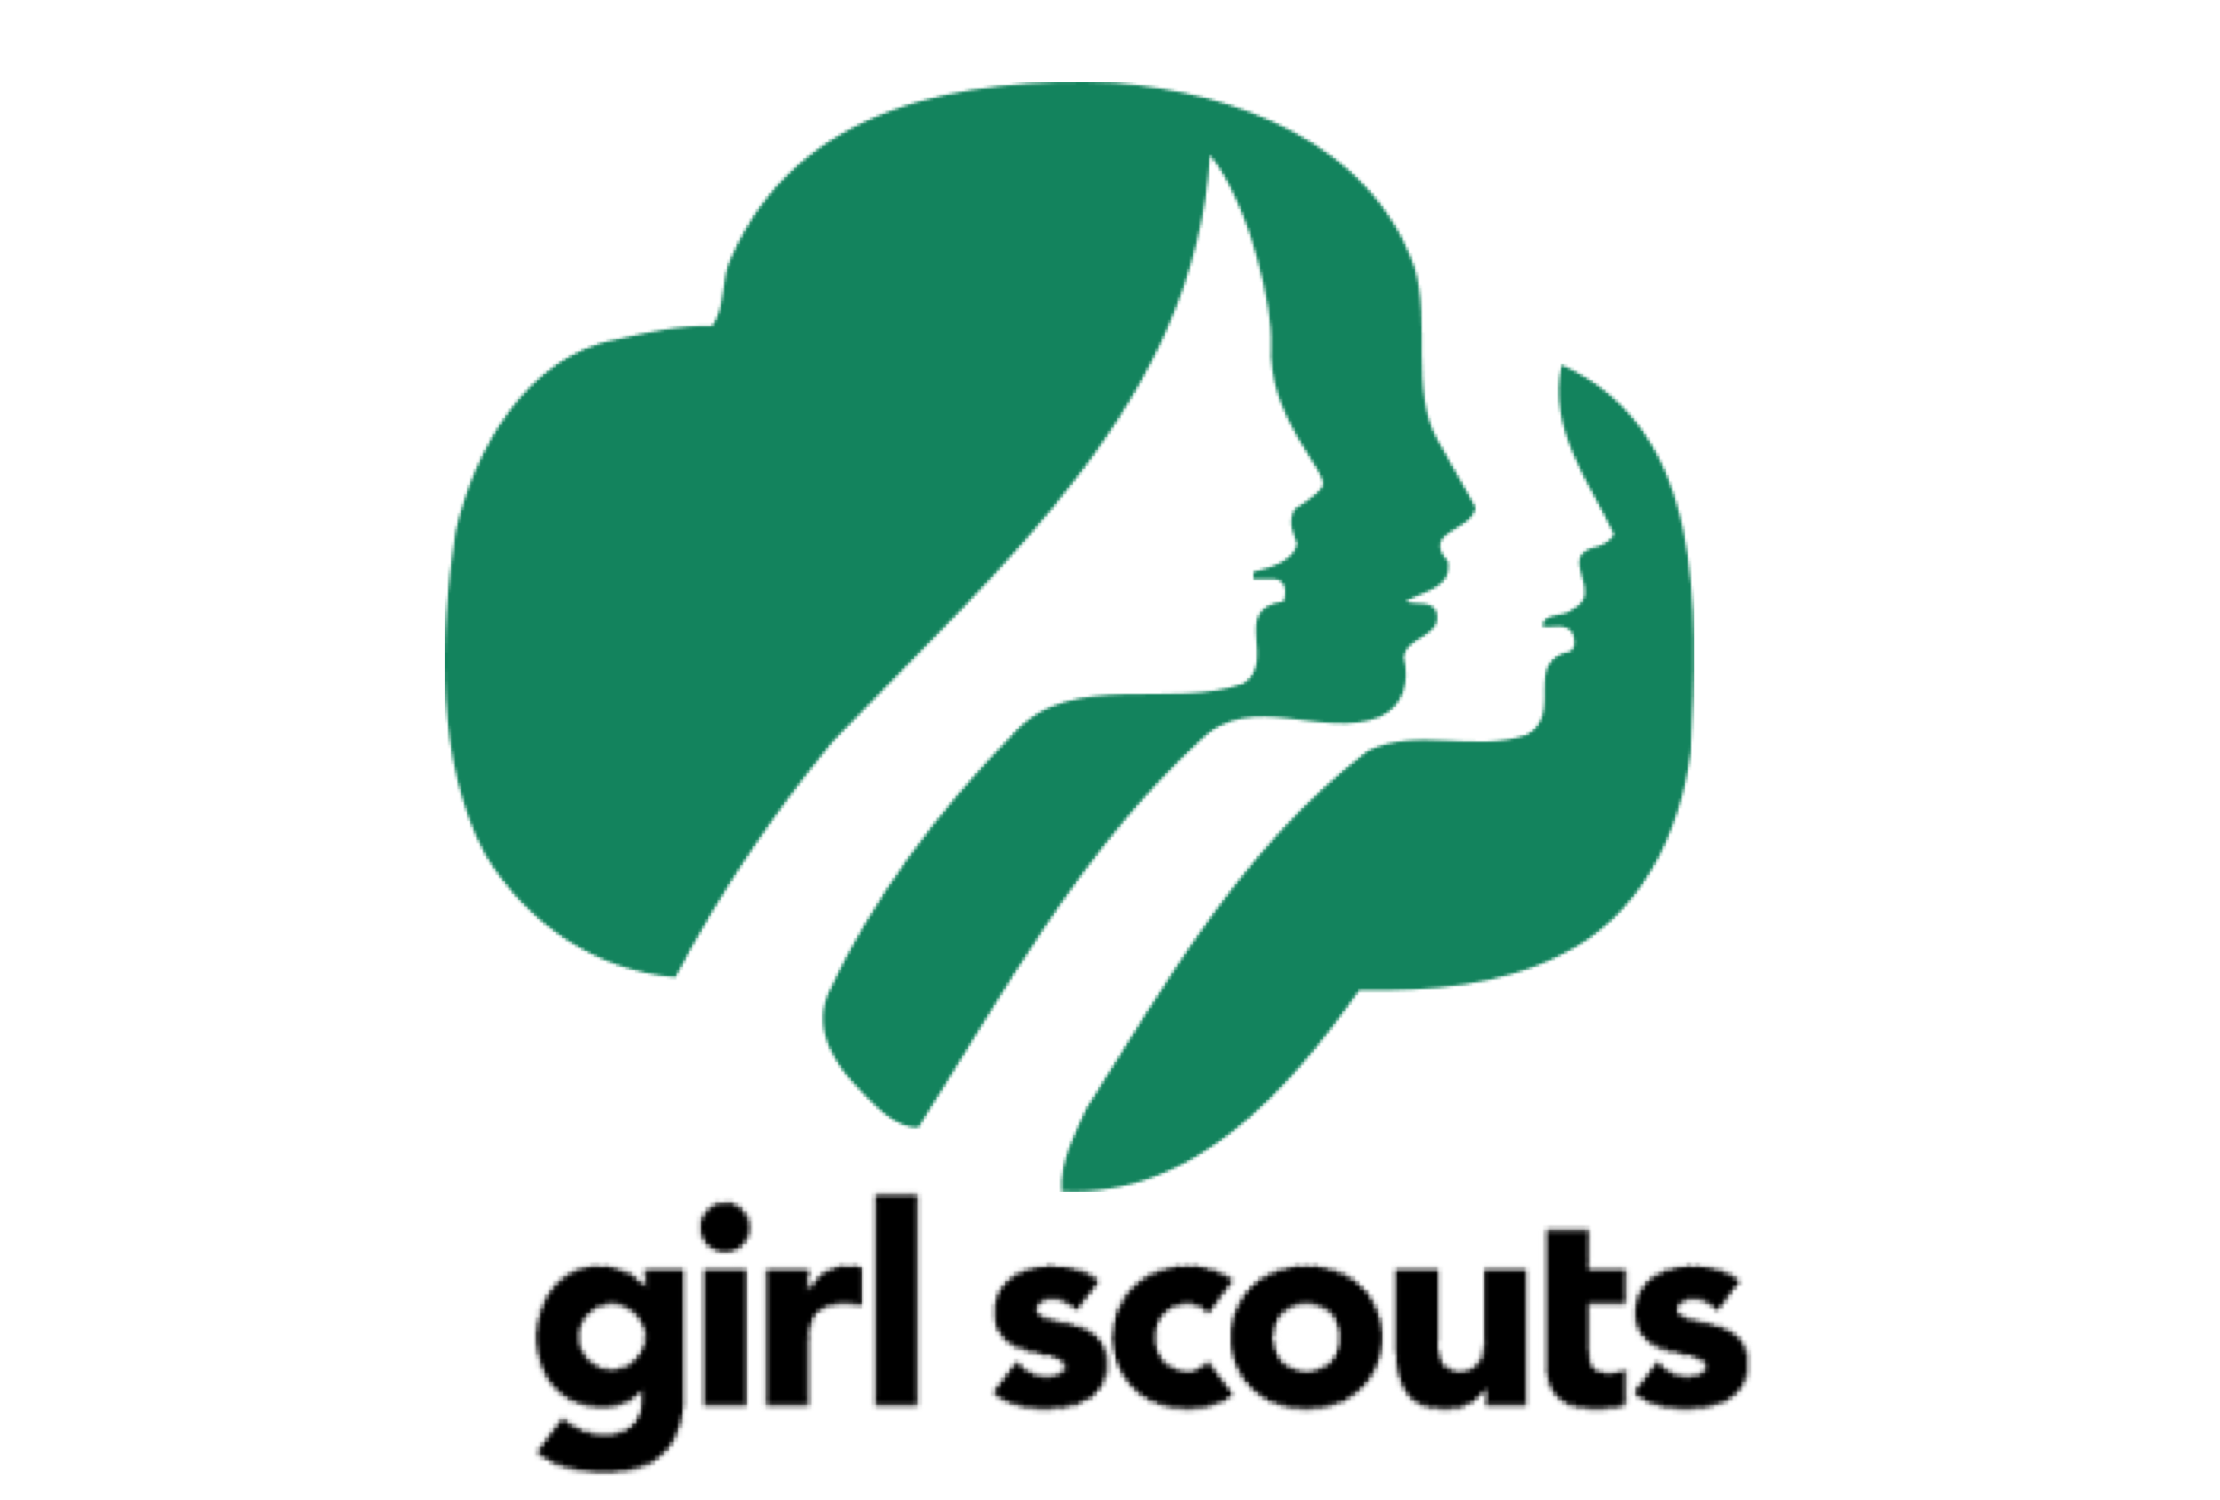 Girl Scouts - More details coming soon!